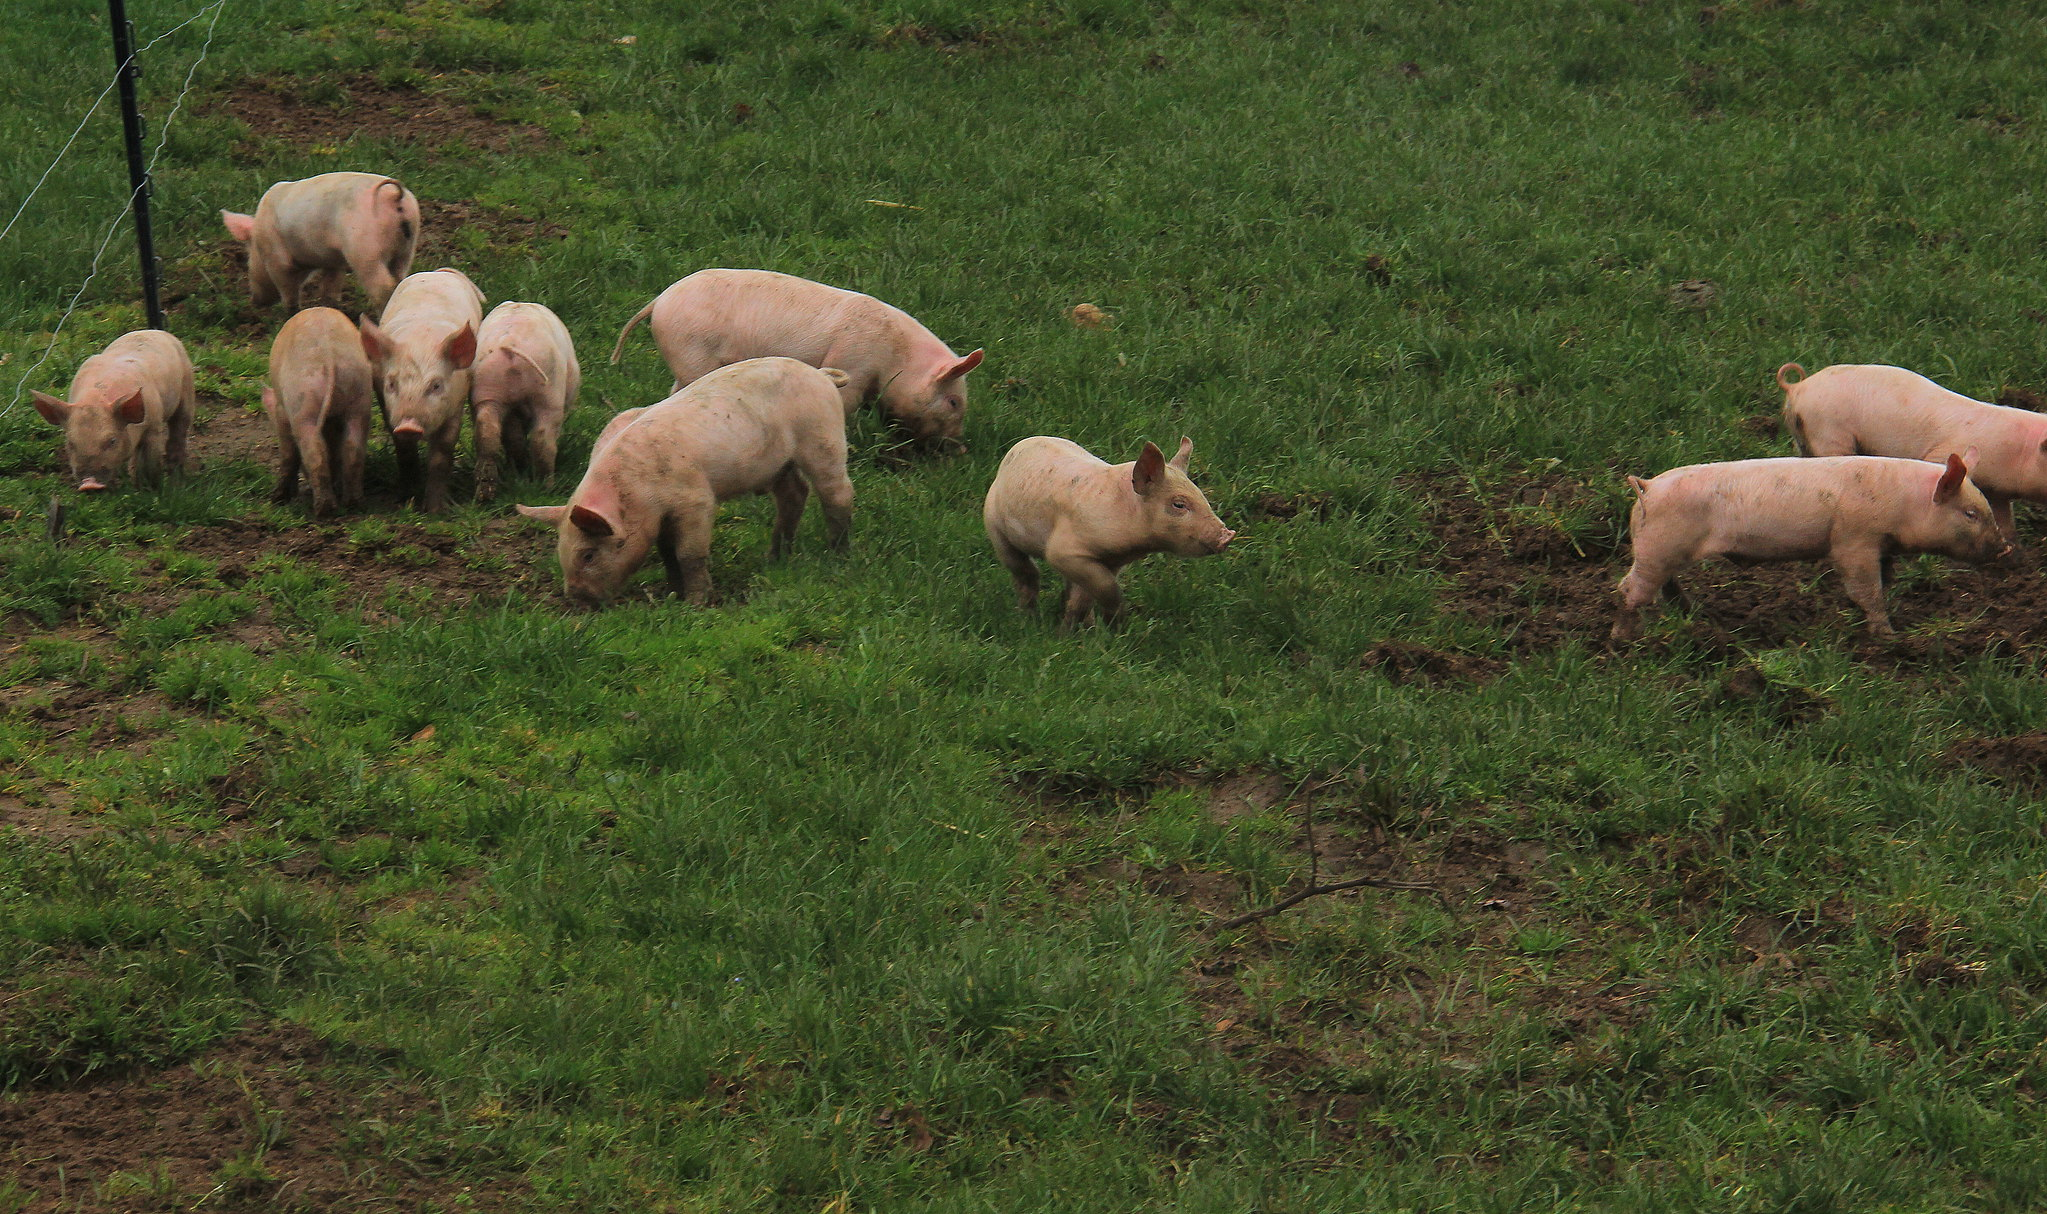 Spring in Dordogne makes farms come alive with newborn animals